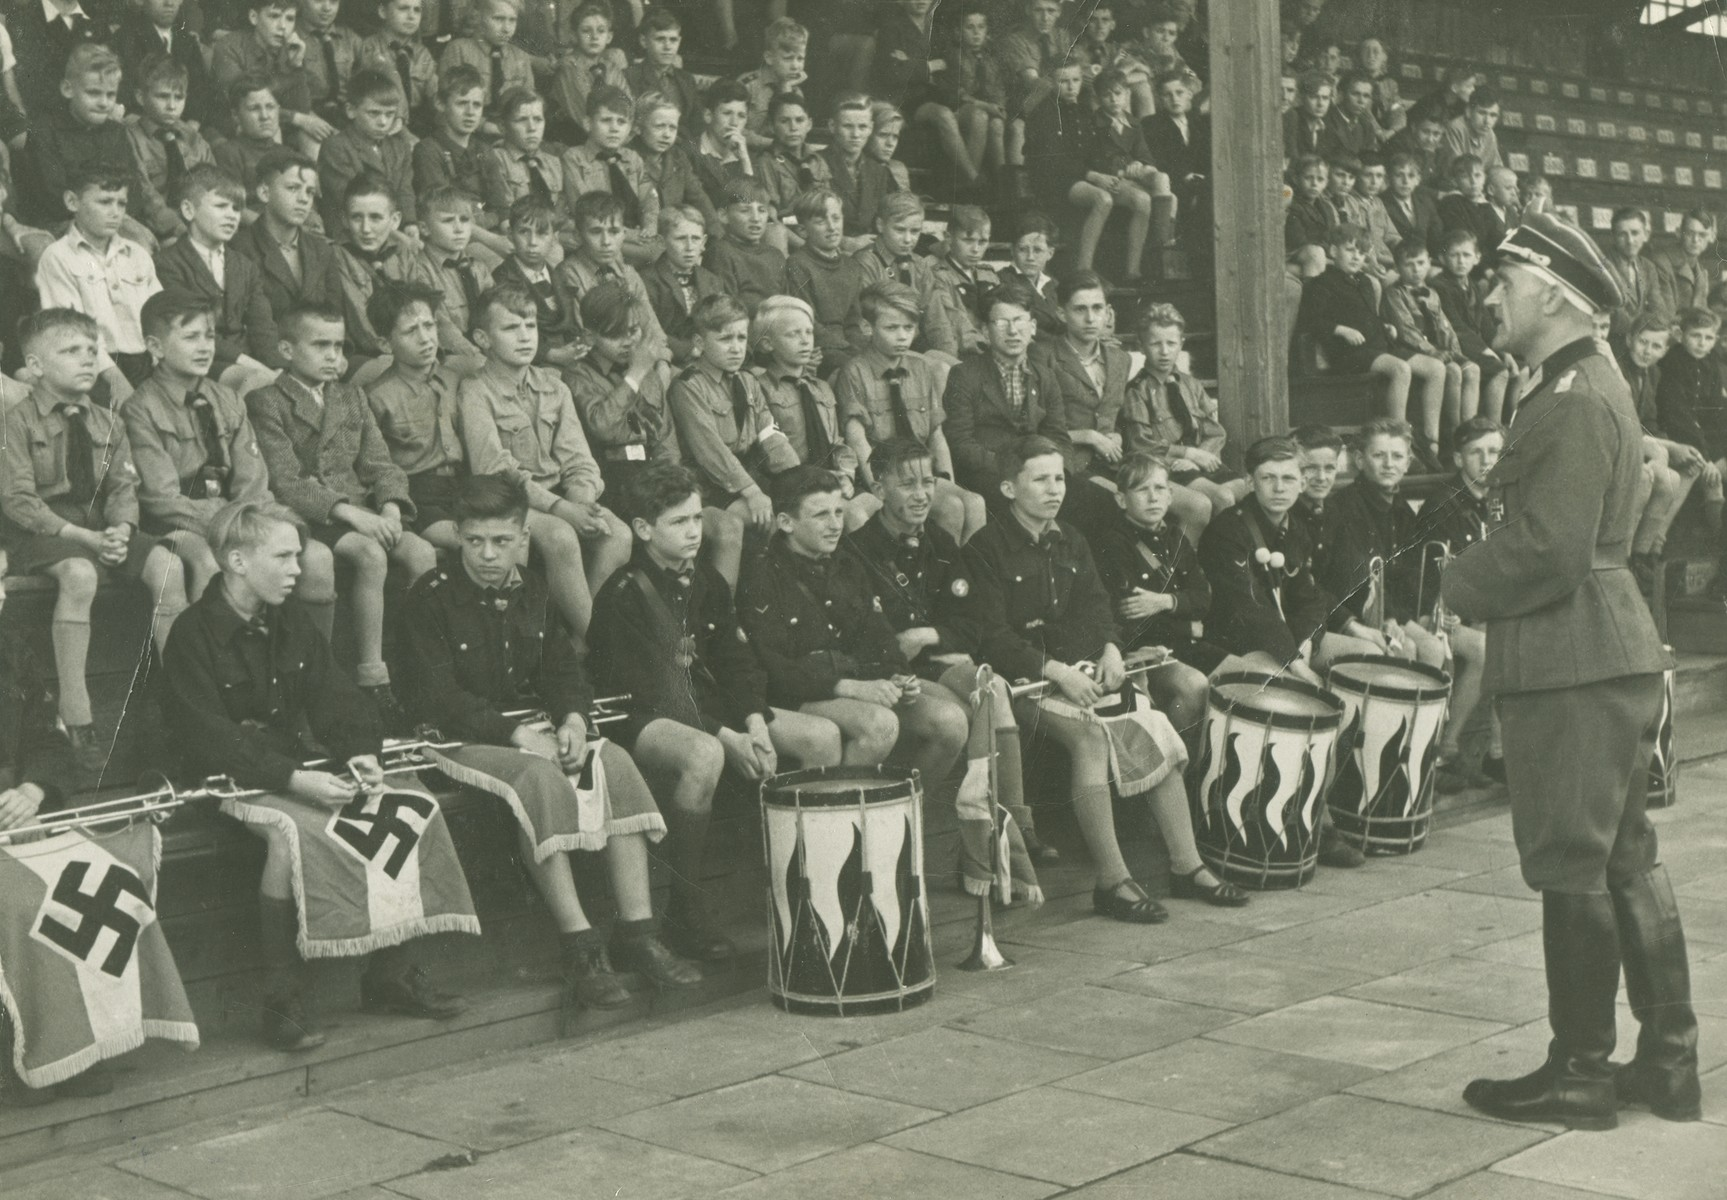 Young members of the Hitler Youth sit in a stadium behind a row of buglers and drummers.